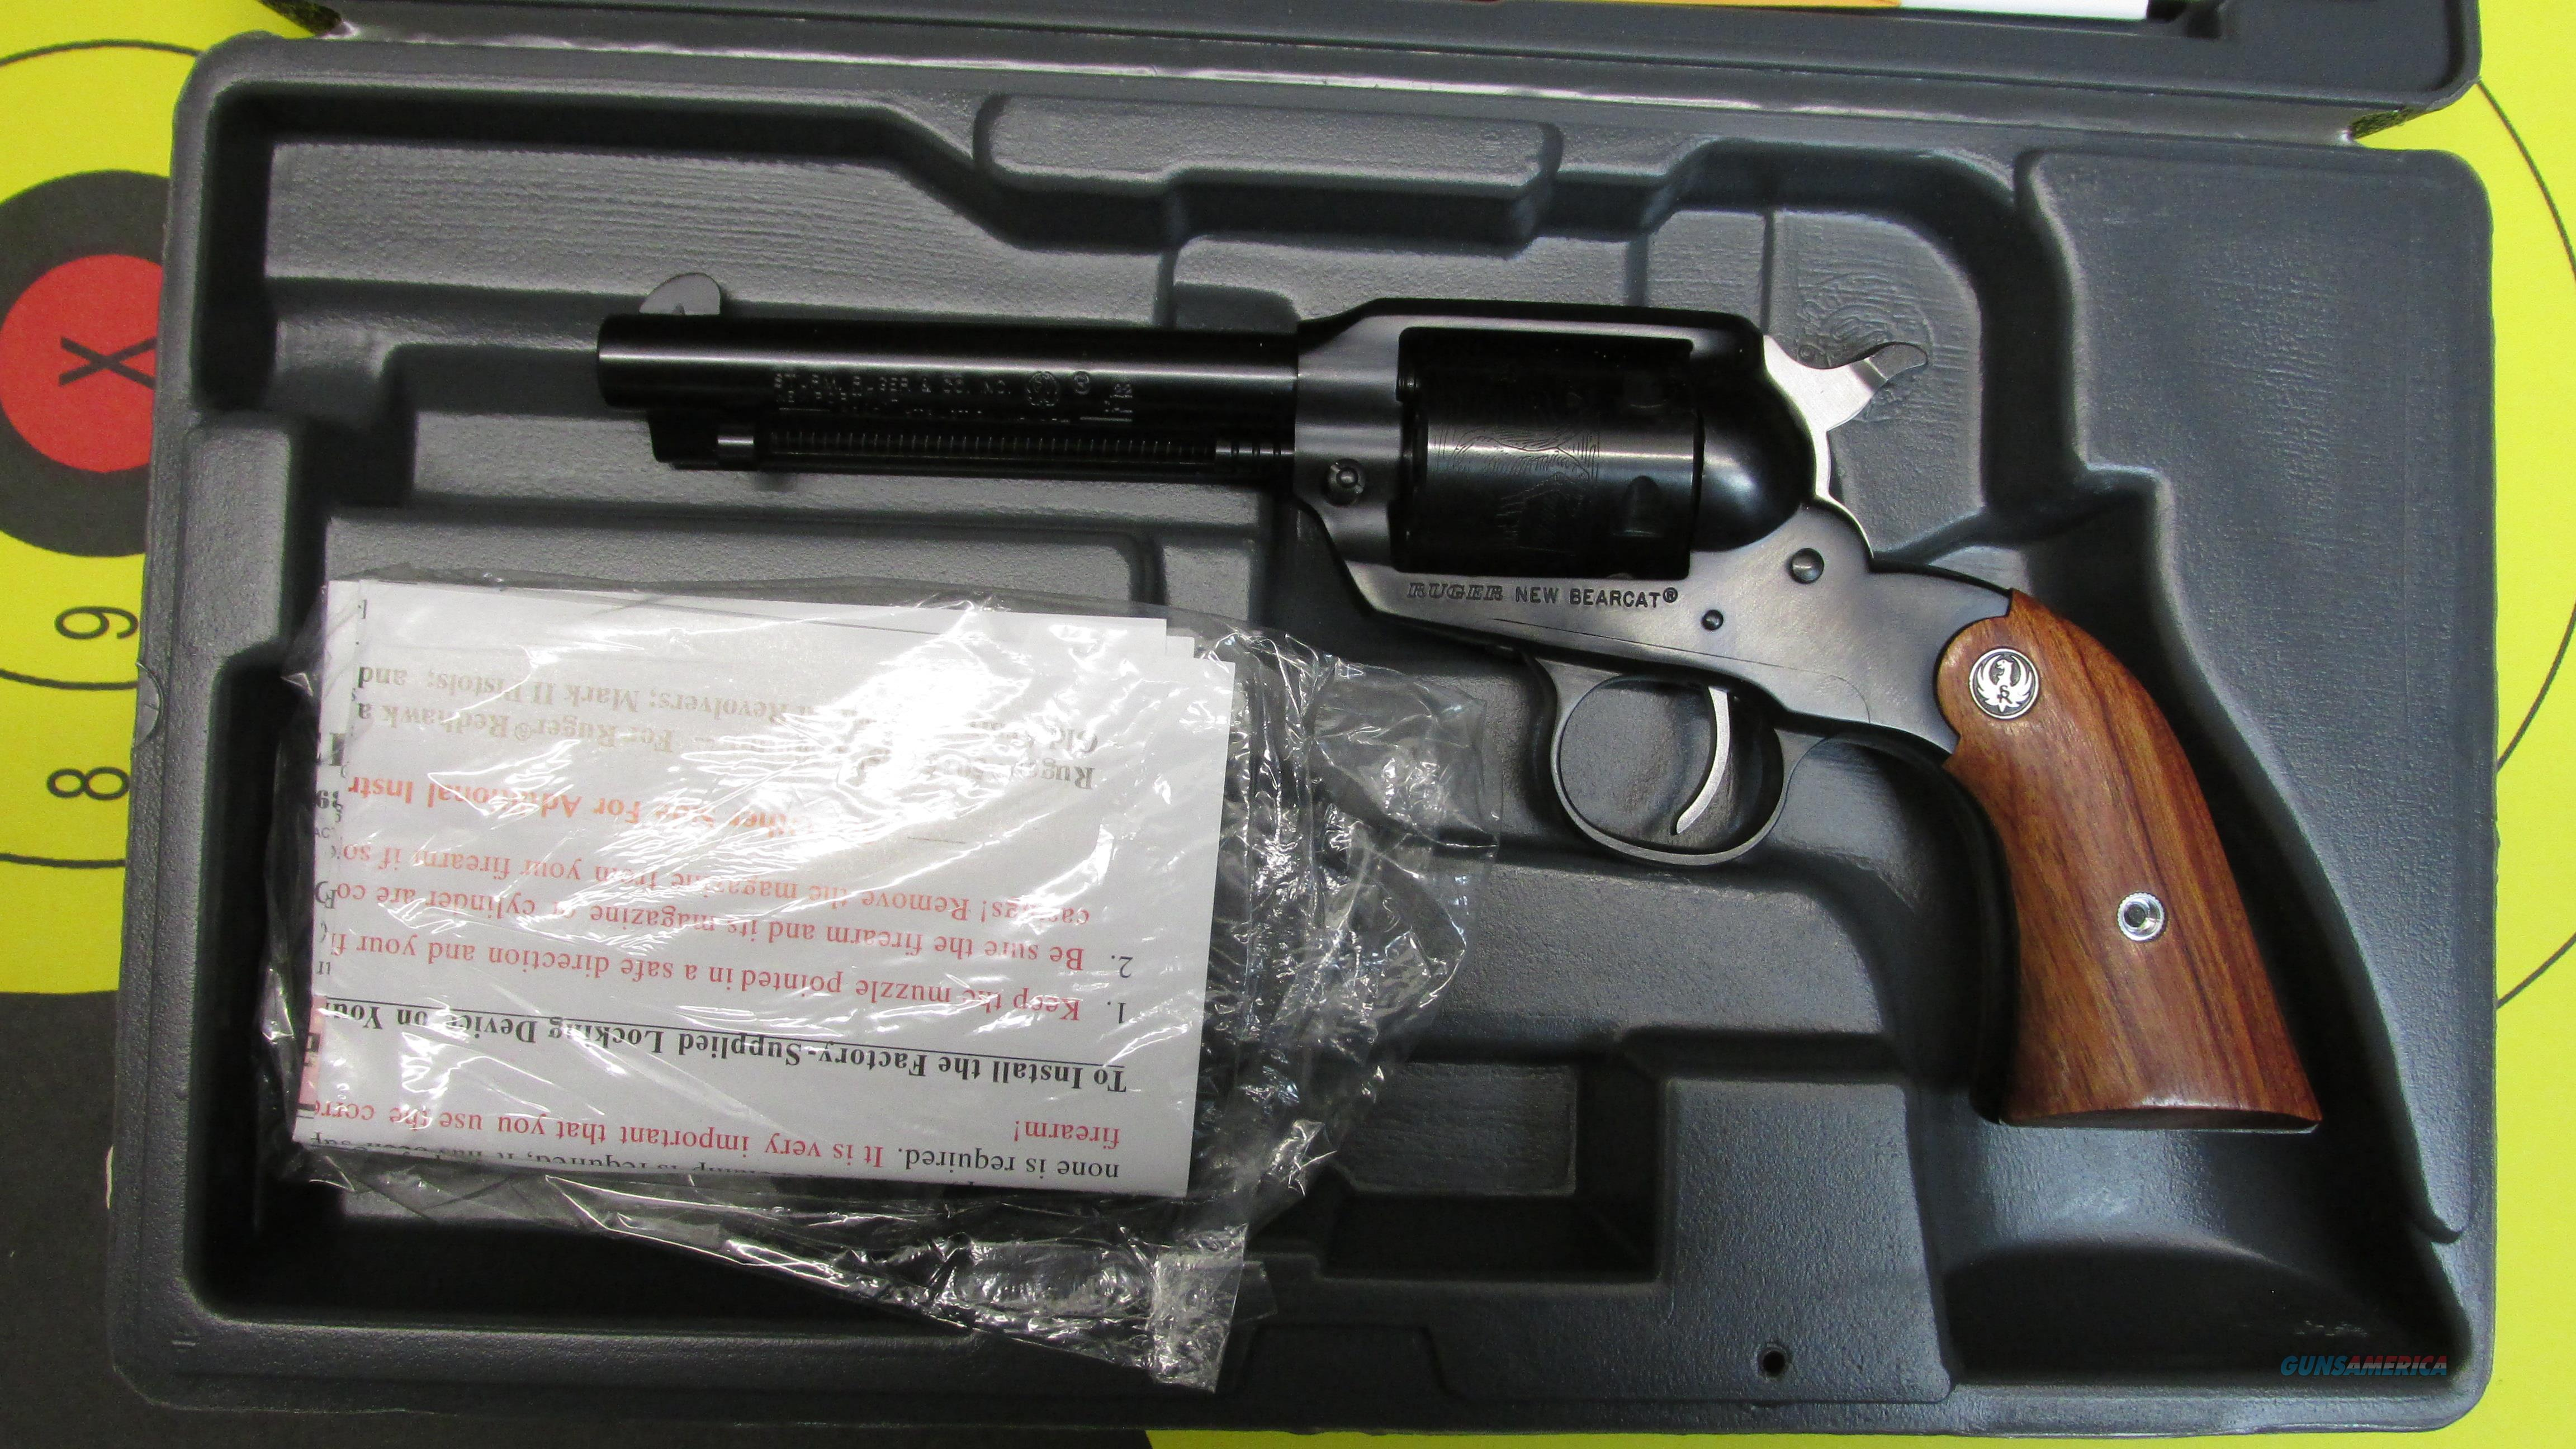 Ruger Bearcat 22LR Revolver  Guns > Pistols > Ruger Single Action Revolvers > Bearcat